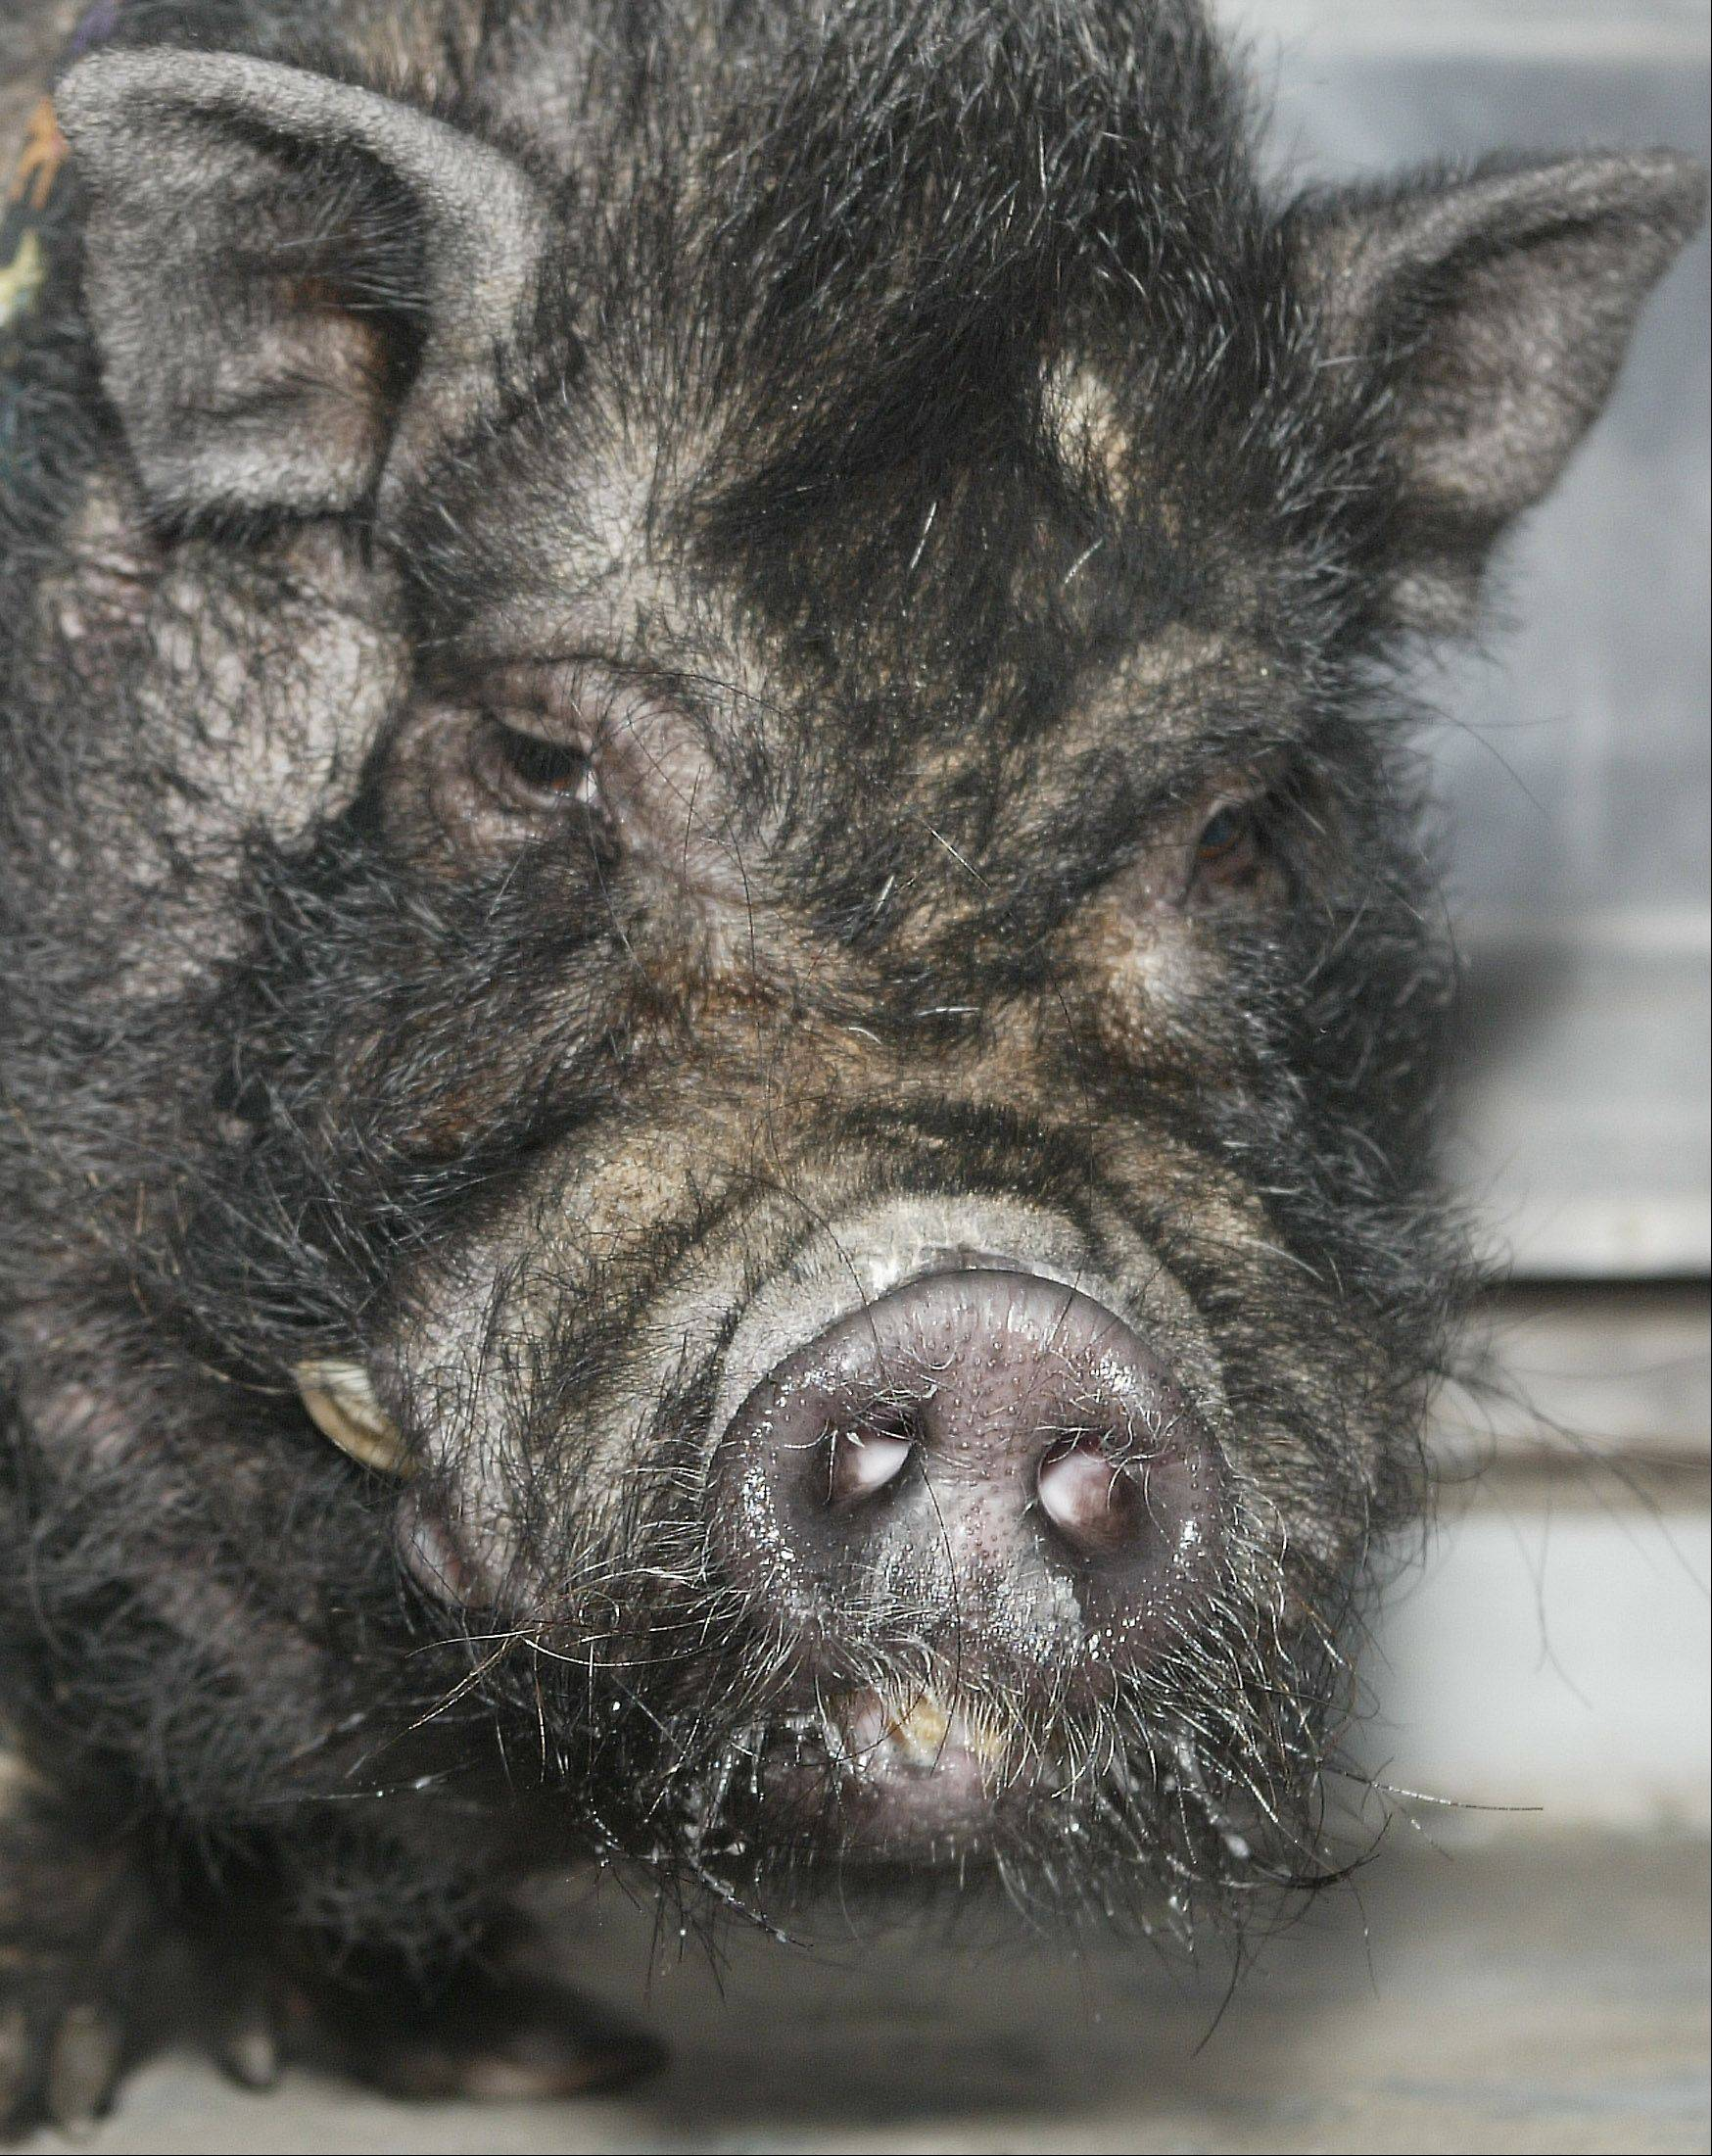 Arlington Heights clarified its prohibited animals part of the municipal code on Monday after receiving a request from a resident who wanted to keep a potbellied pig as a pet.